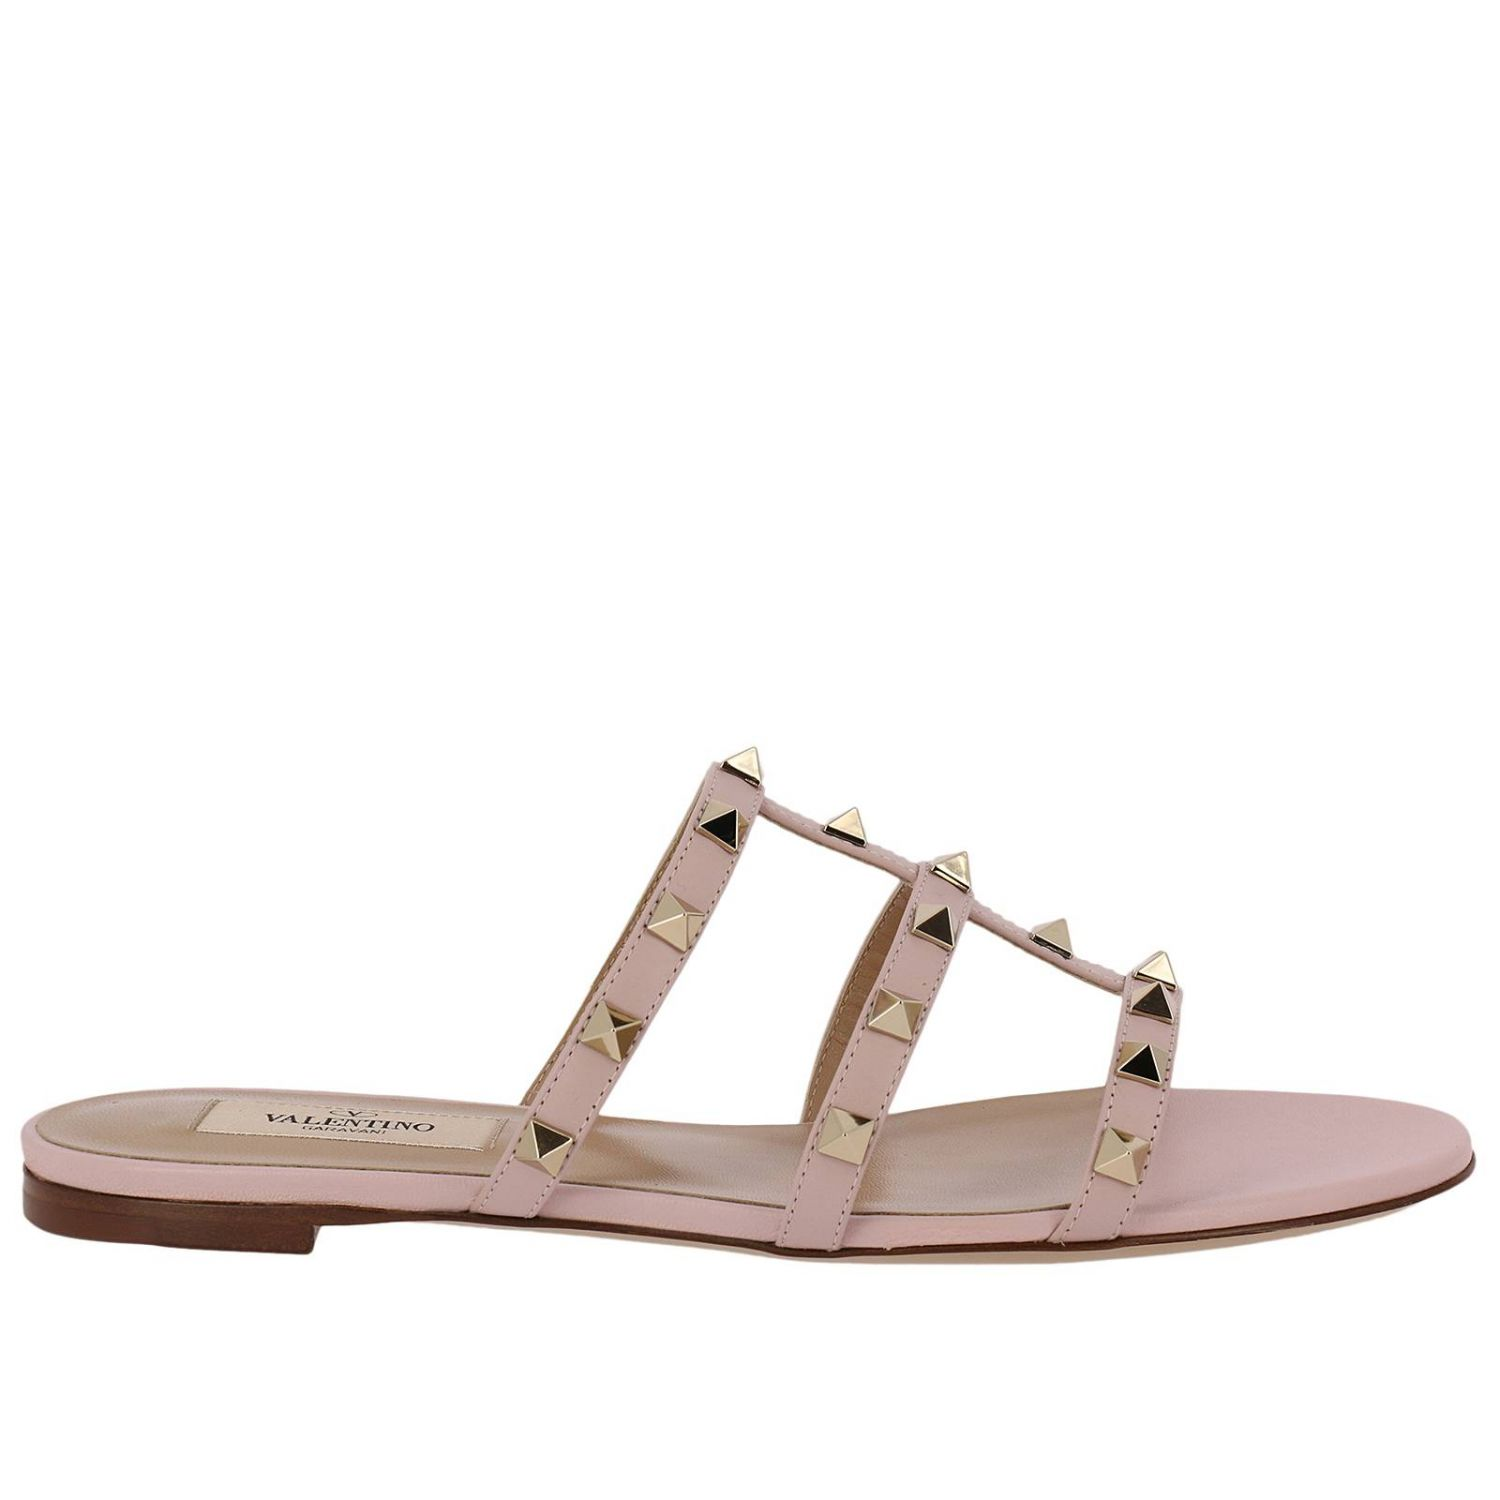 Flat Sandals Valentino Rockstud Sandal Flats In Genuine Laminated Leather With Metal Studs 8287274